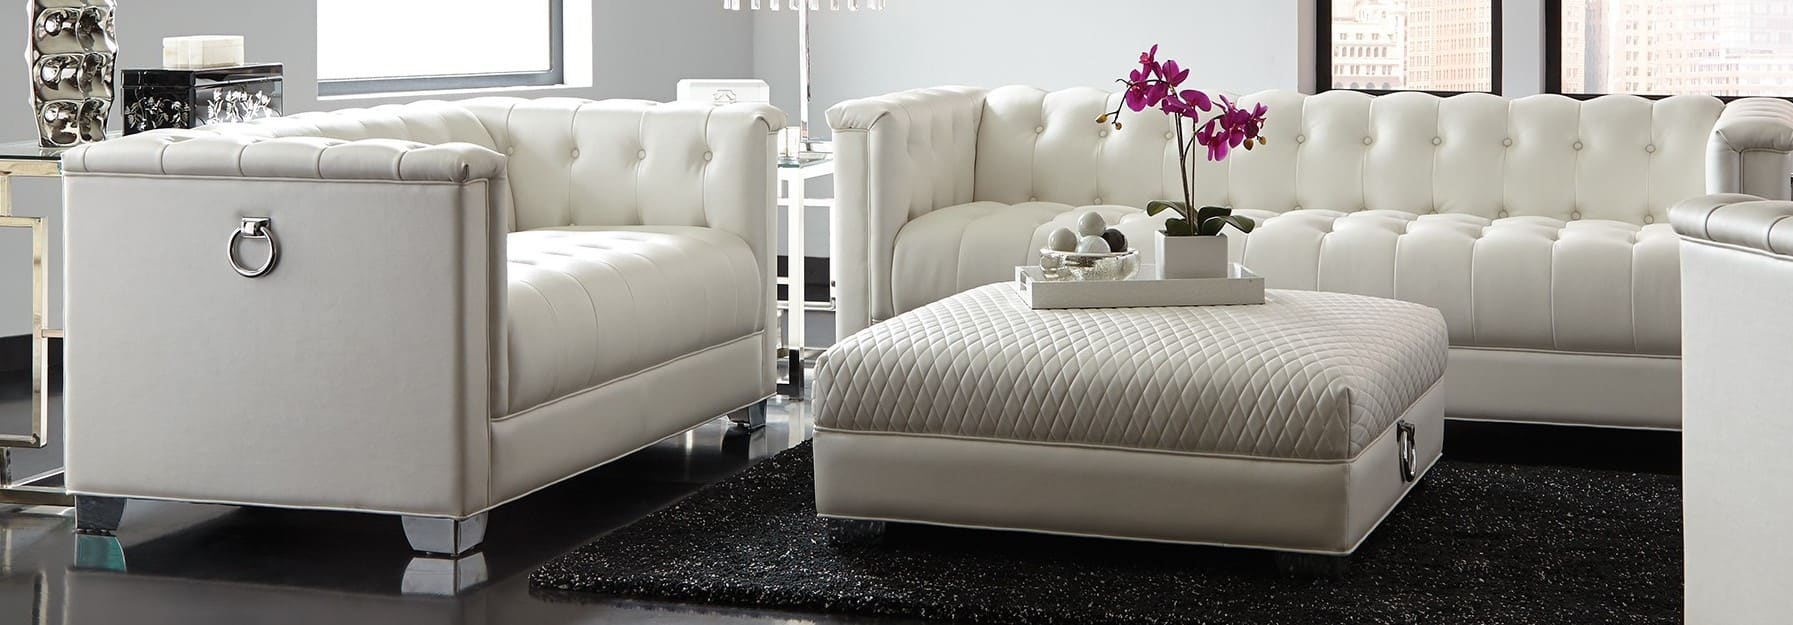 Coaster Chaviano Pearl White 2-Piece Living Room Set & Reviews -  Goedekers.com